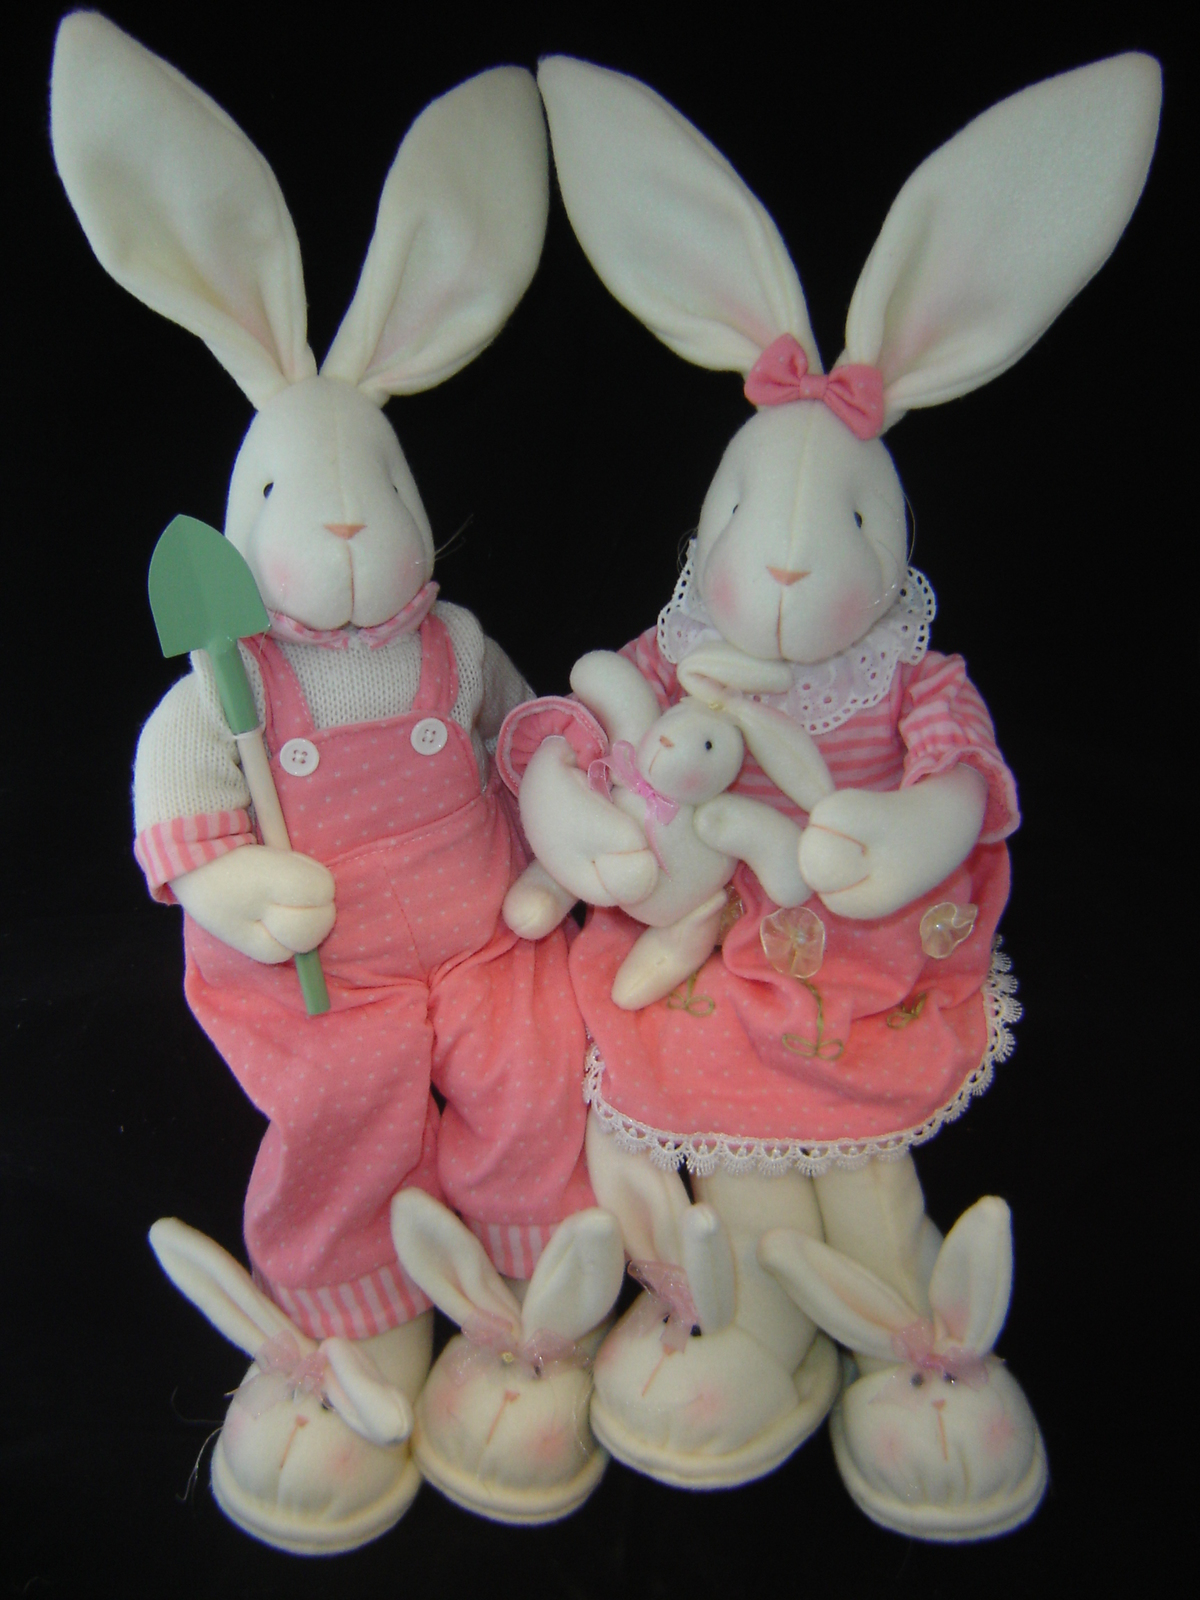 Girl & Boy Soft Body Pink Bunnies - Set of 2 - Sitting